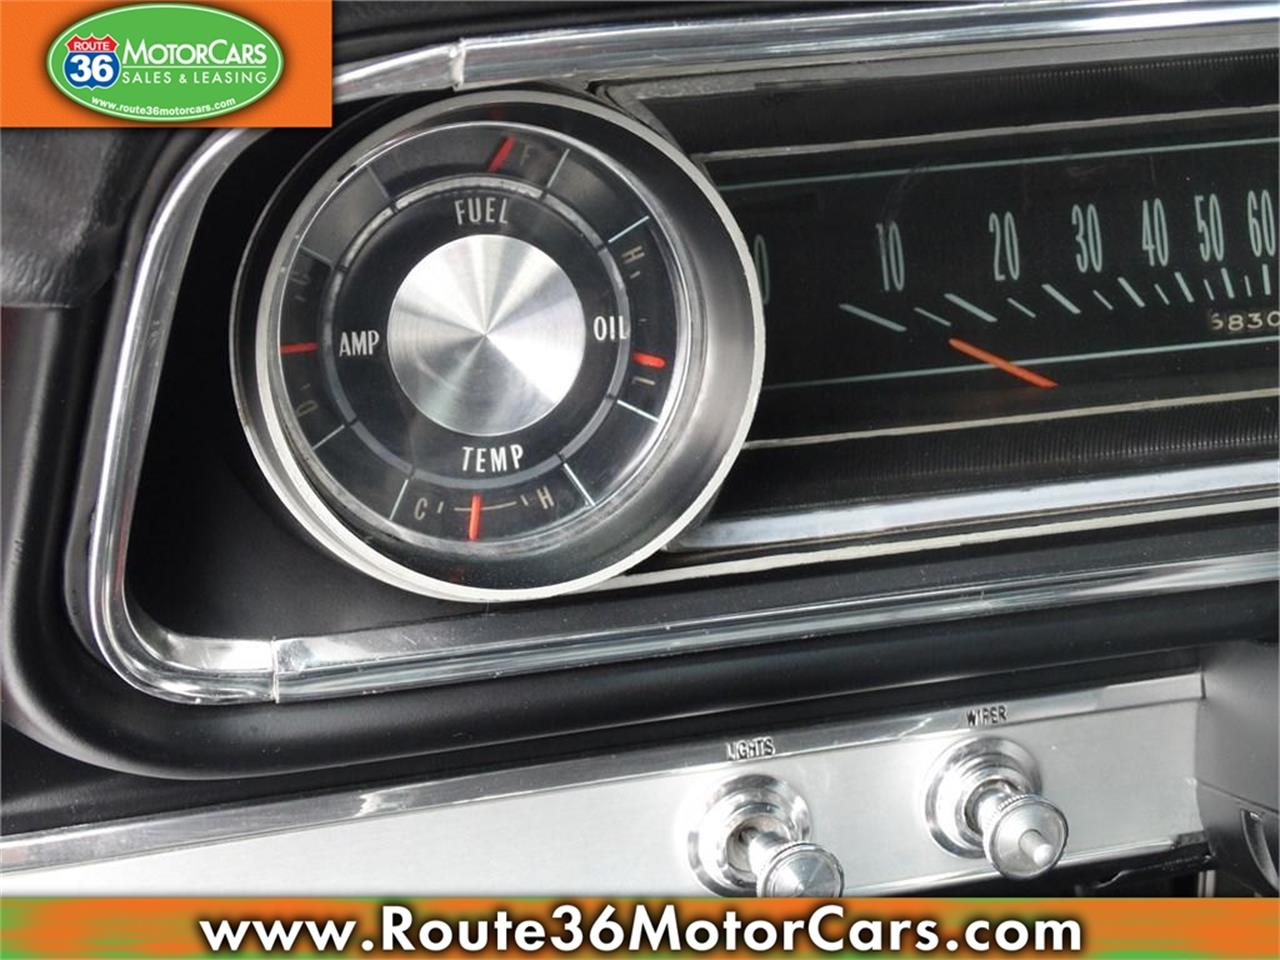 Large Picture of '65 Chevrolet Impala SS - $84,475.00 Offered by Route 36 Motor Cars - IKGZ